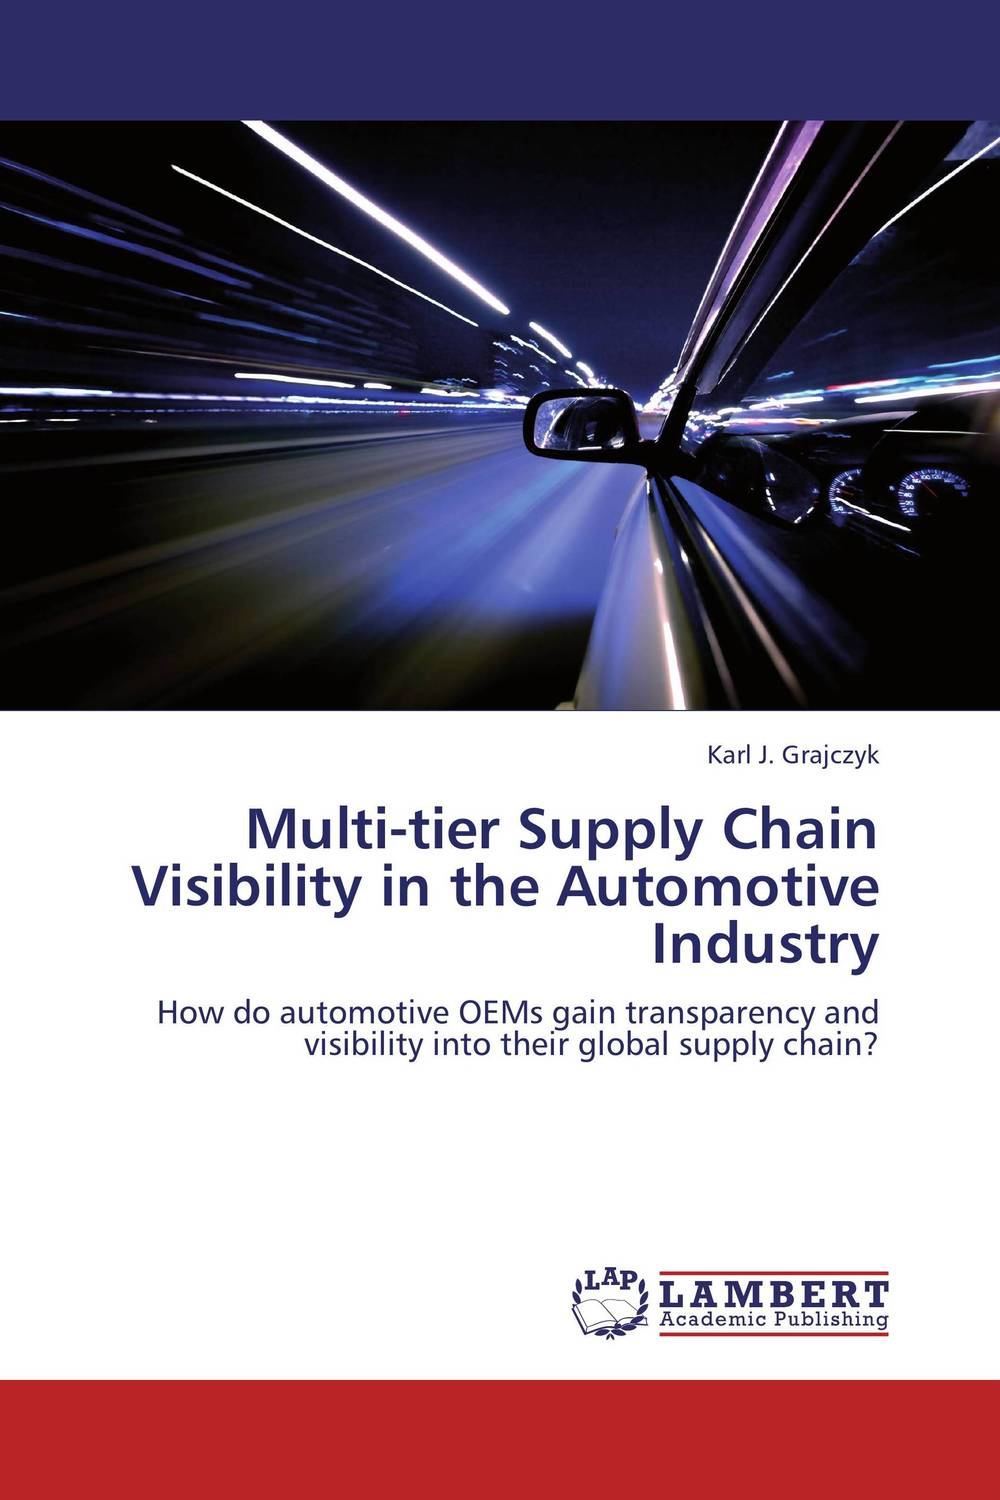 Multi-tier Supply Chain Visibility in the Automotive Industry